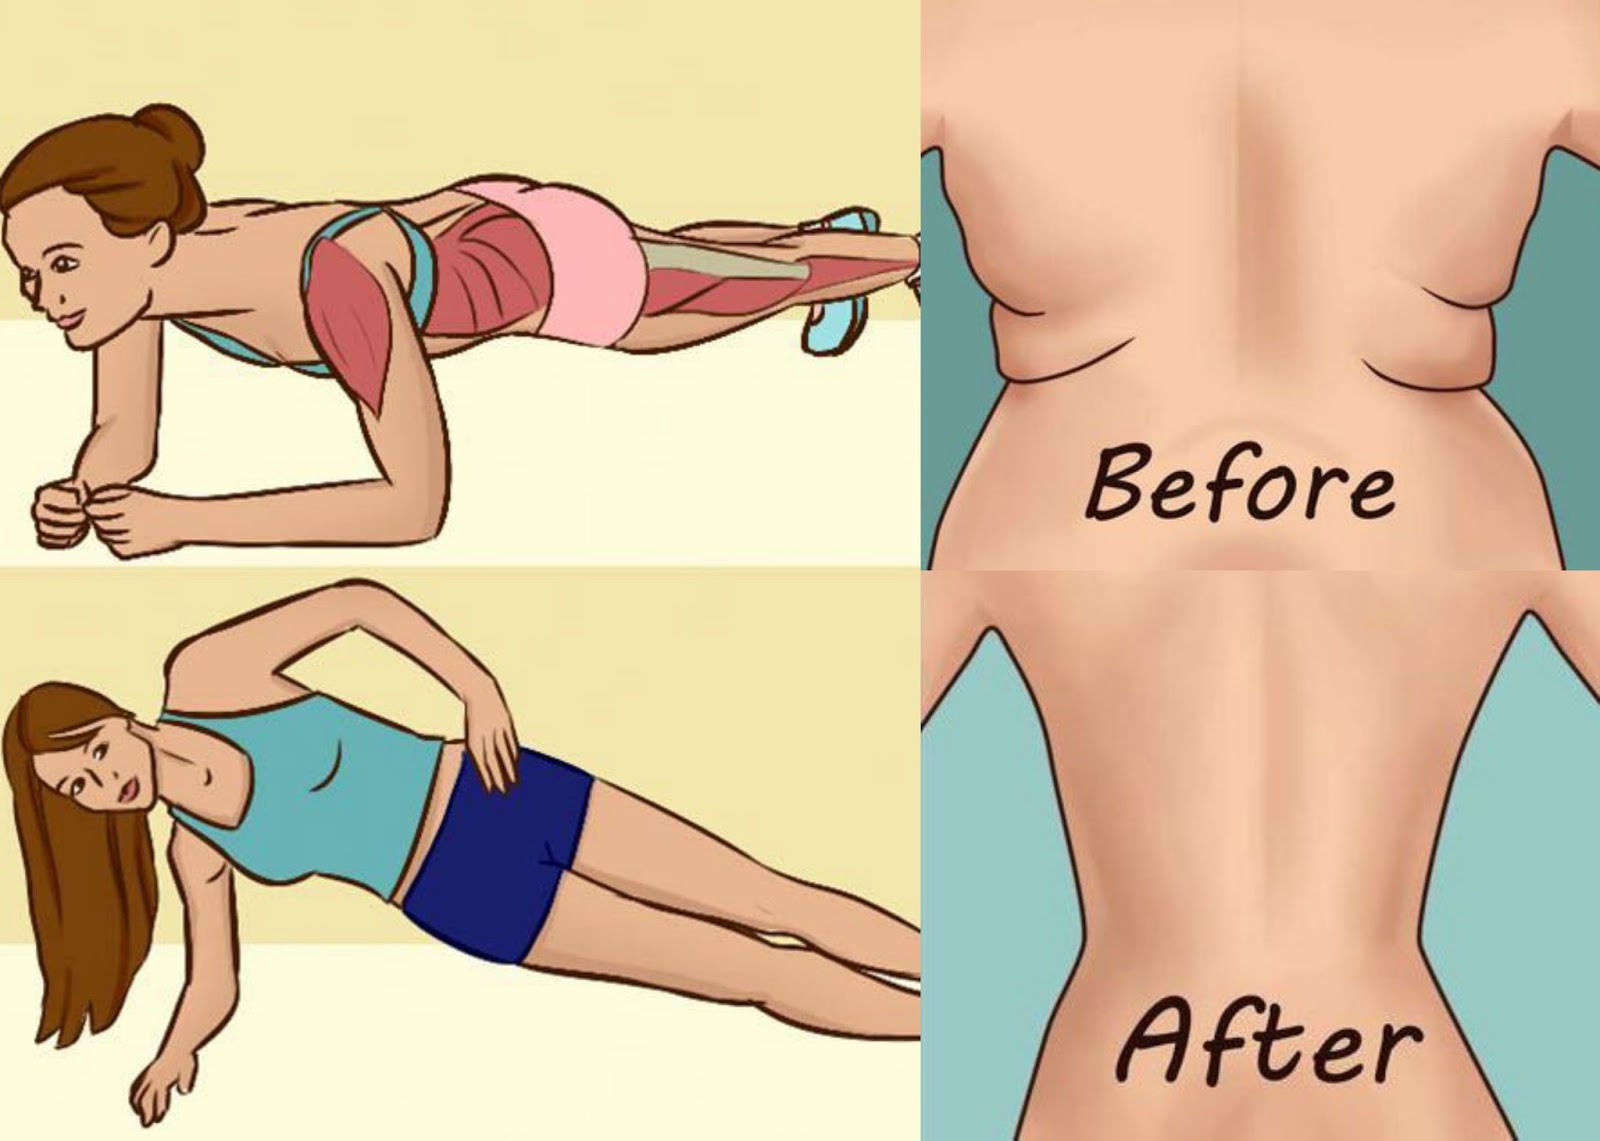 It will take 4 minutes a day to change your body- Try this one month and you will see